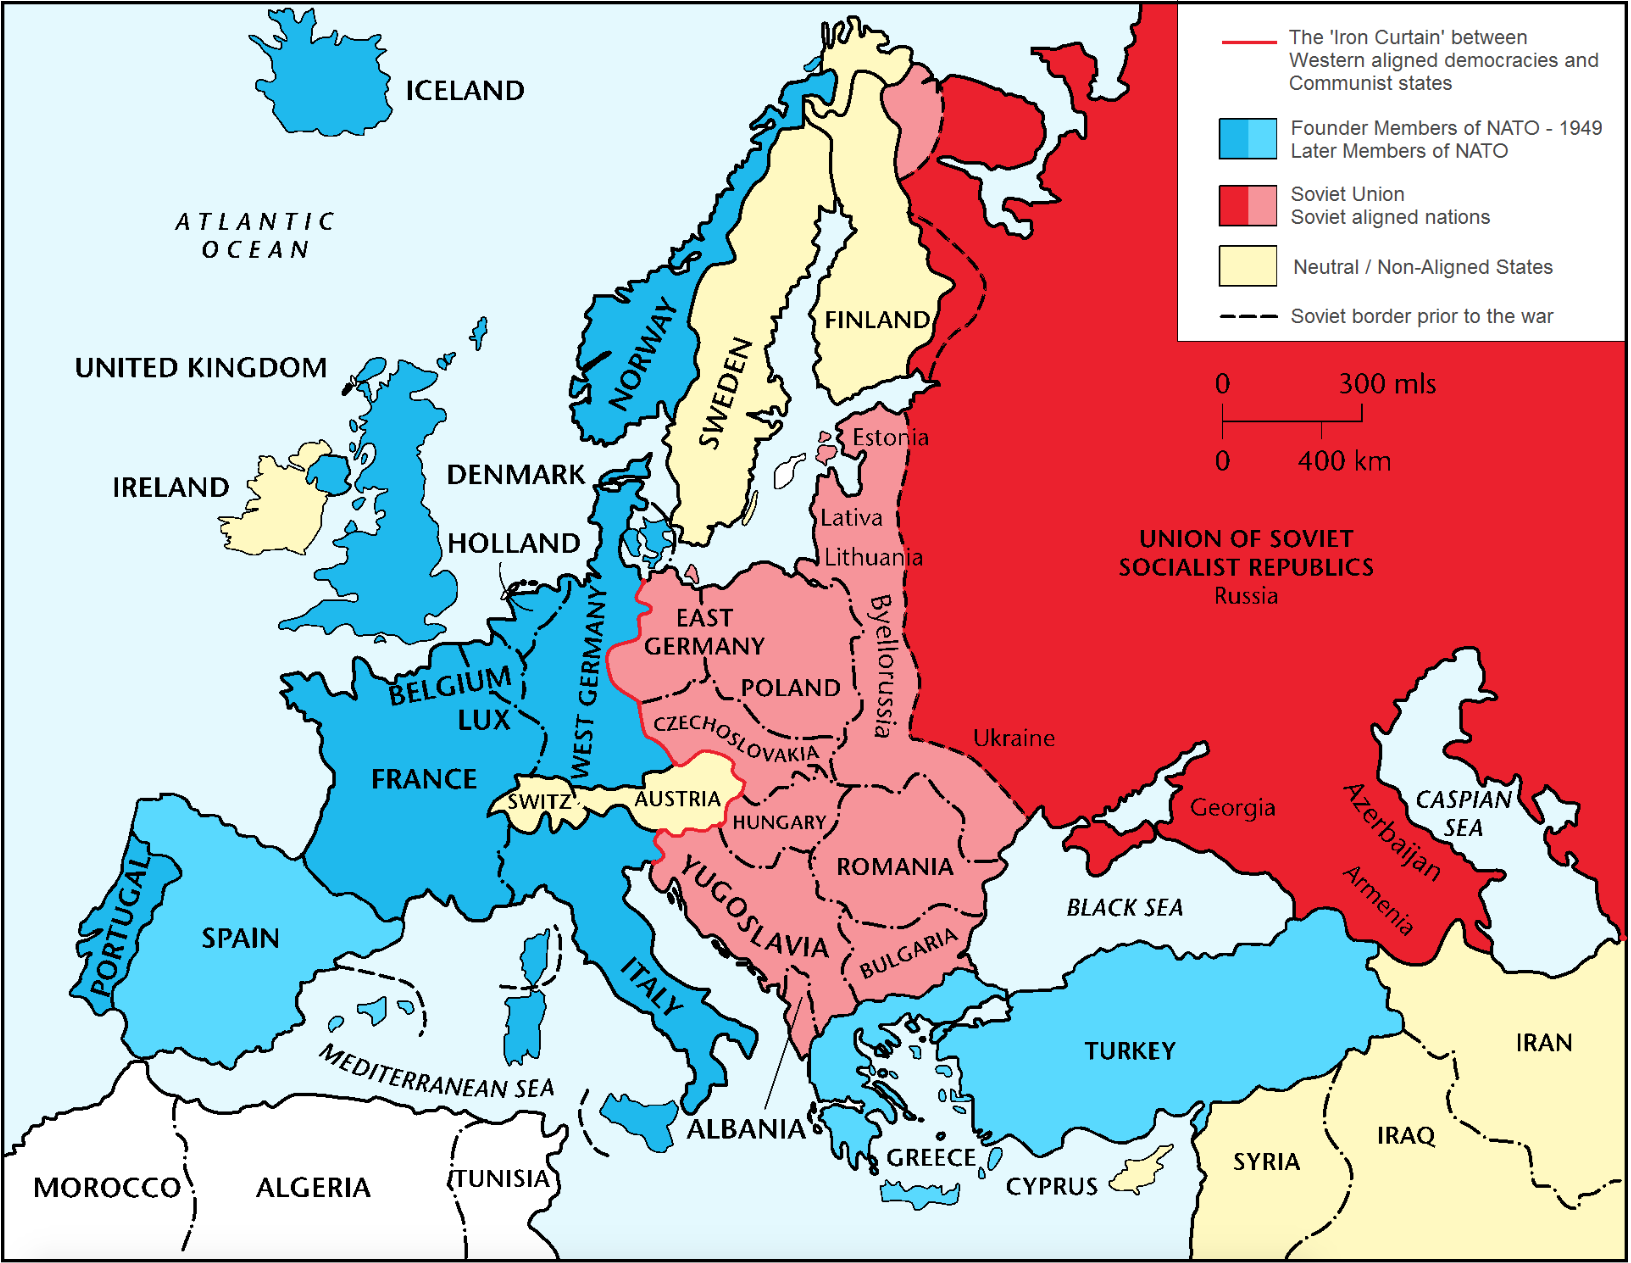 eastern europe and the cold war The cold war in western & eastern europe - chapter summary and learning objectives spanning from 1945-1991, the cold war between the us and the soviet union was a period marked by economic.